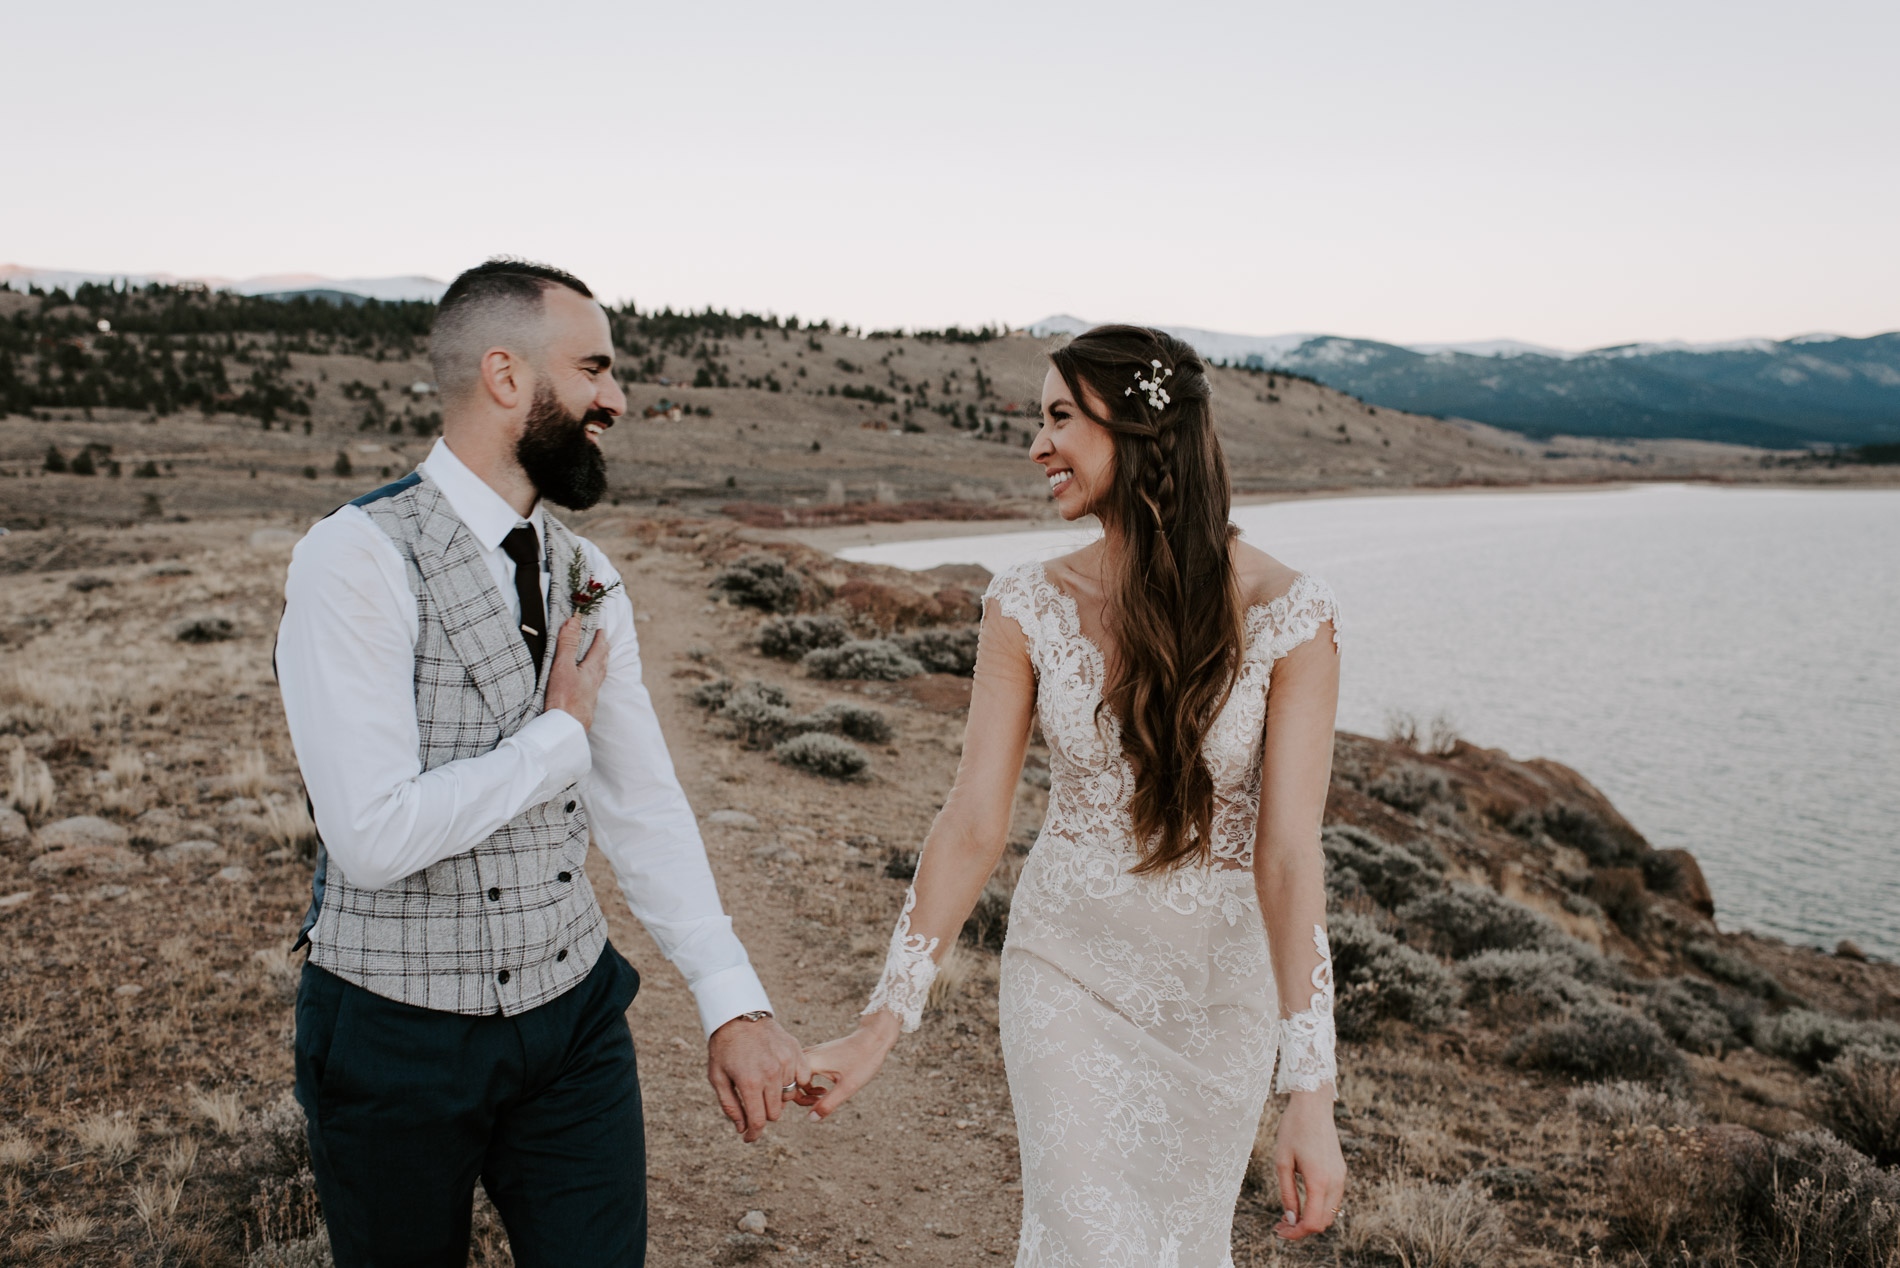 wolf-den-wedding-wolf-den-twin-lakes-aspen-wedding-aspen-wedding-photography-Adventure-elopement-photographer-Adventure-wedding-photographer-Destination-wedding-Destination-elopement-Destination-wedding-photography-Destination-wedding-photographer-Teresa-Woodhull-Intimate-Wedding-Photography-Teresa-Woodhull-Intimate-Wedding-Photographer-Teresa-Woodhull-Elopement-Photography-Teresa-Woodhull-Elopement-Photographer-Elopement-Photography-Intimate-Elopement-Photographer-Intimate-Elopement-Photography-Elopement-Wedding-Weddings-Elope-Elopements-Intimate-Weddings-Adventure-Weddings-Adventure-Wedding-Photograph-Adventure-Wedding-Photograph-aspen-elopement-nik-tani